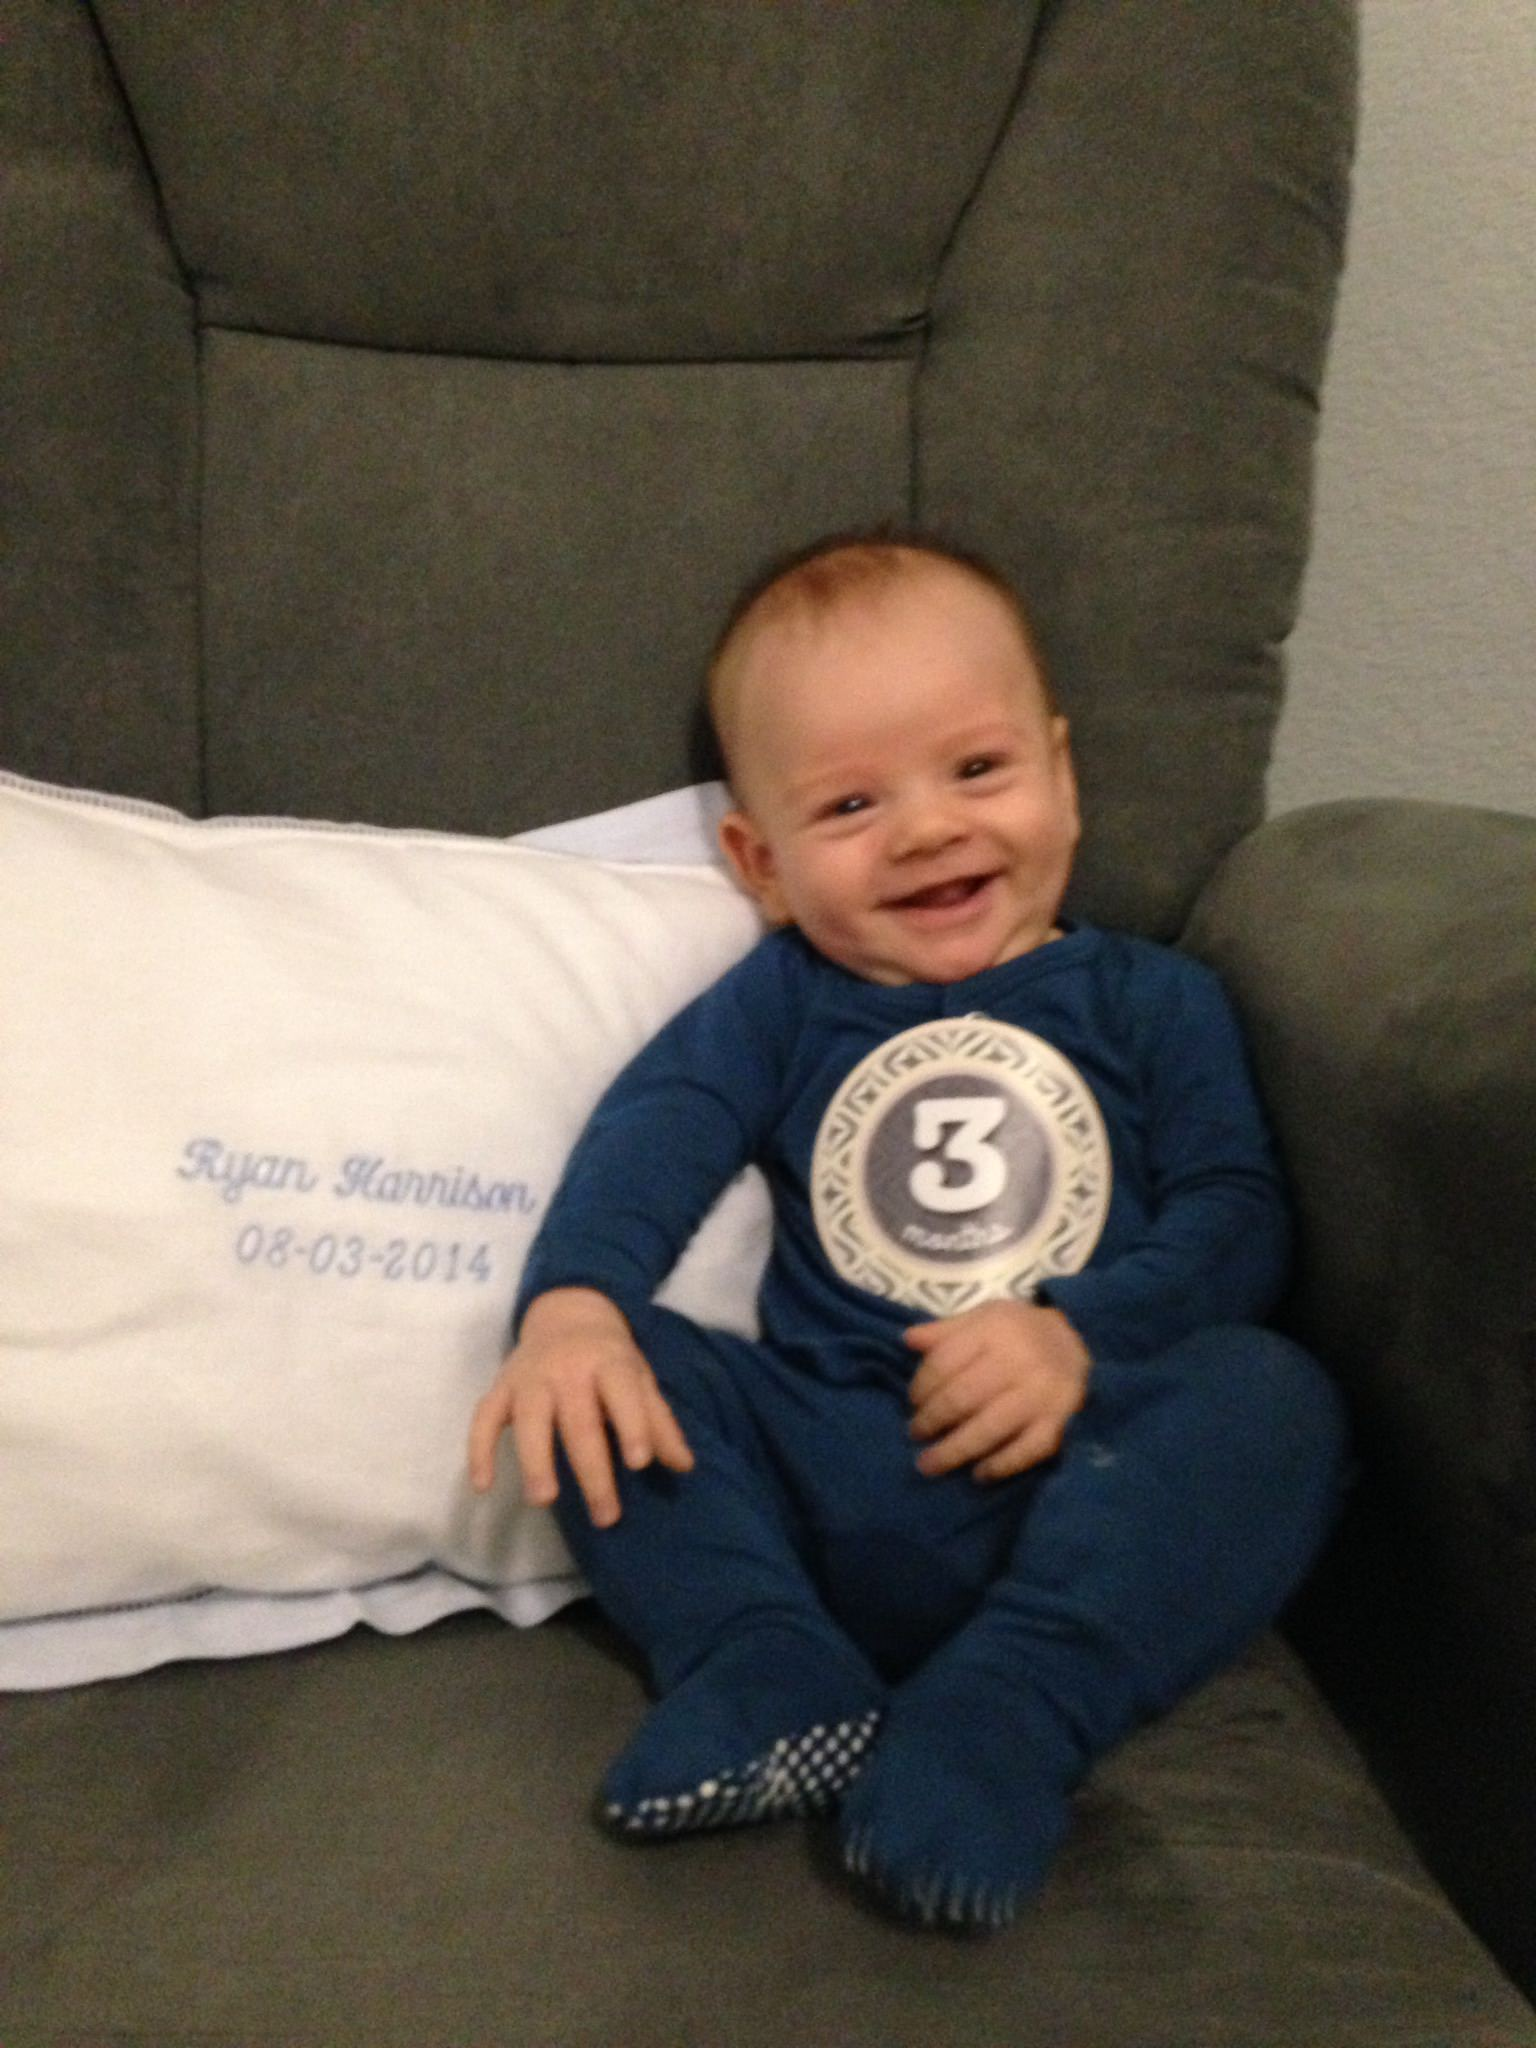 katie Koentje, neat method, neat san diego, cute baby boy, baby boy 3 months, 3 month old baby